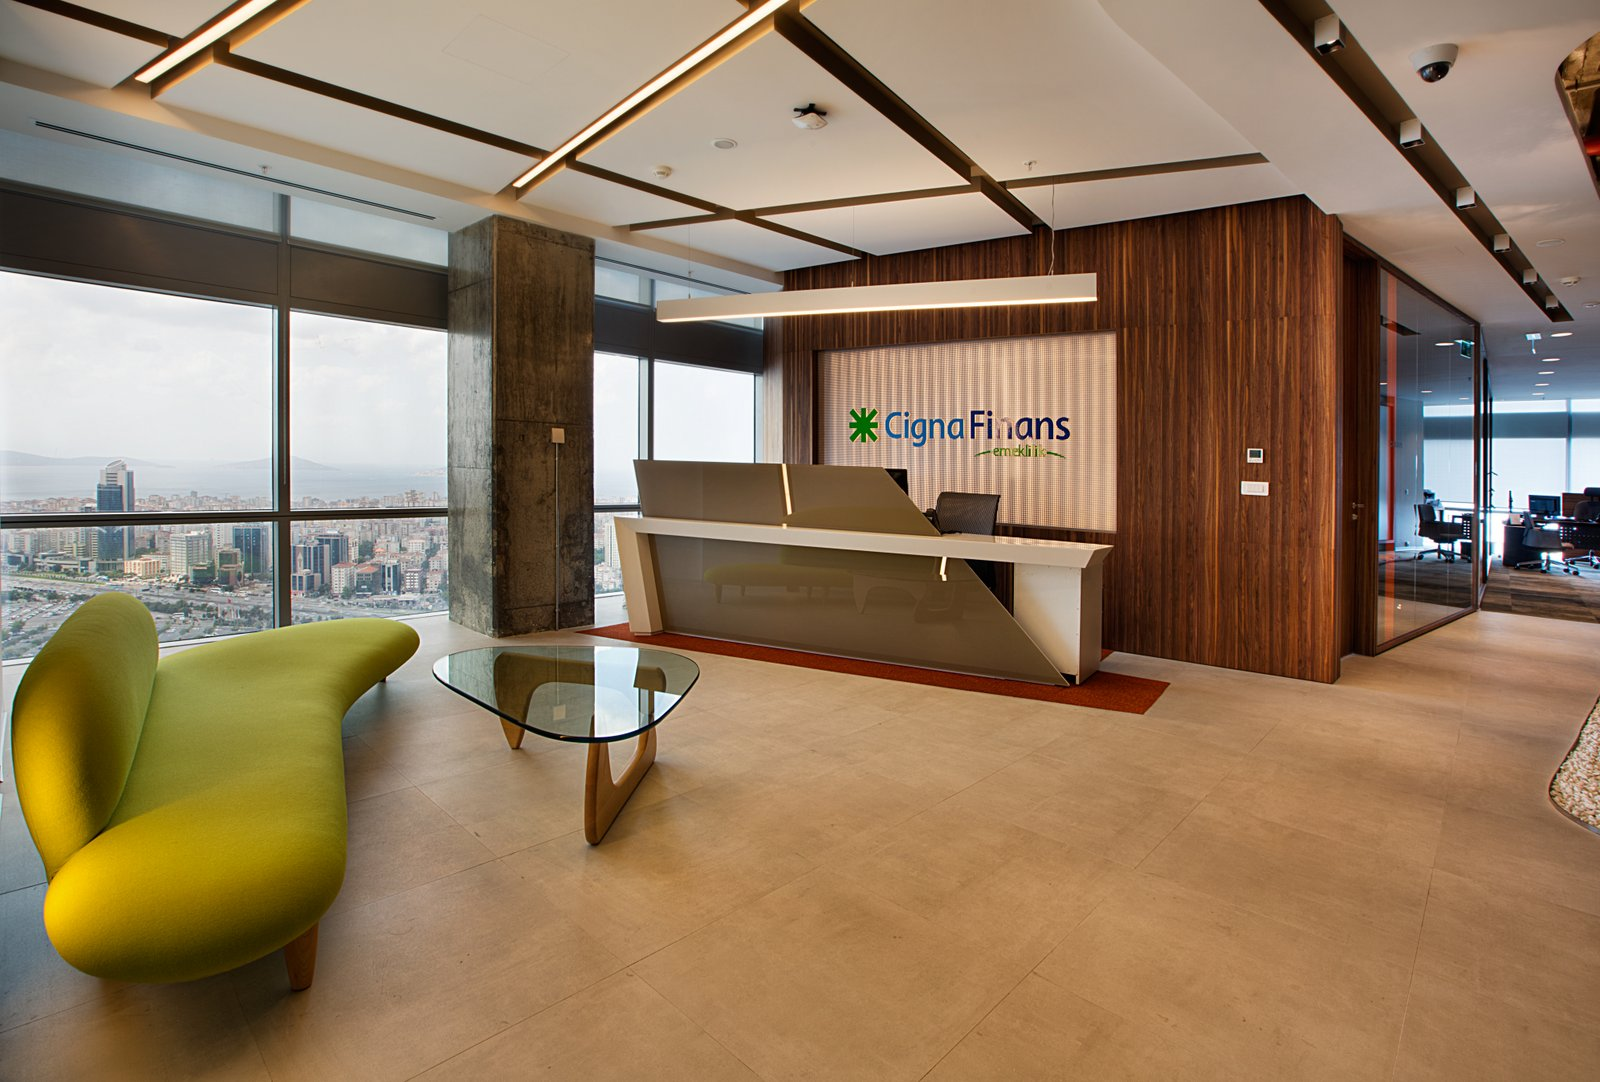 Cigna Finance Office